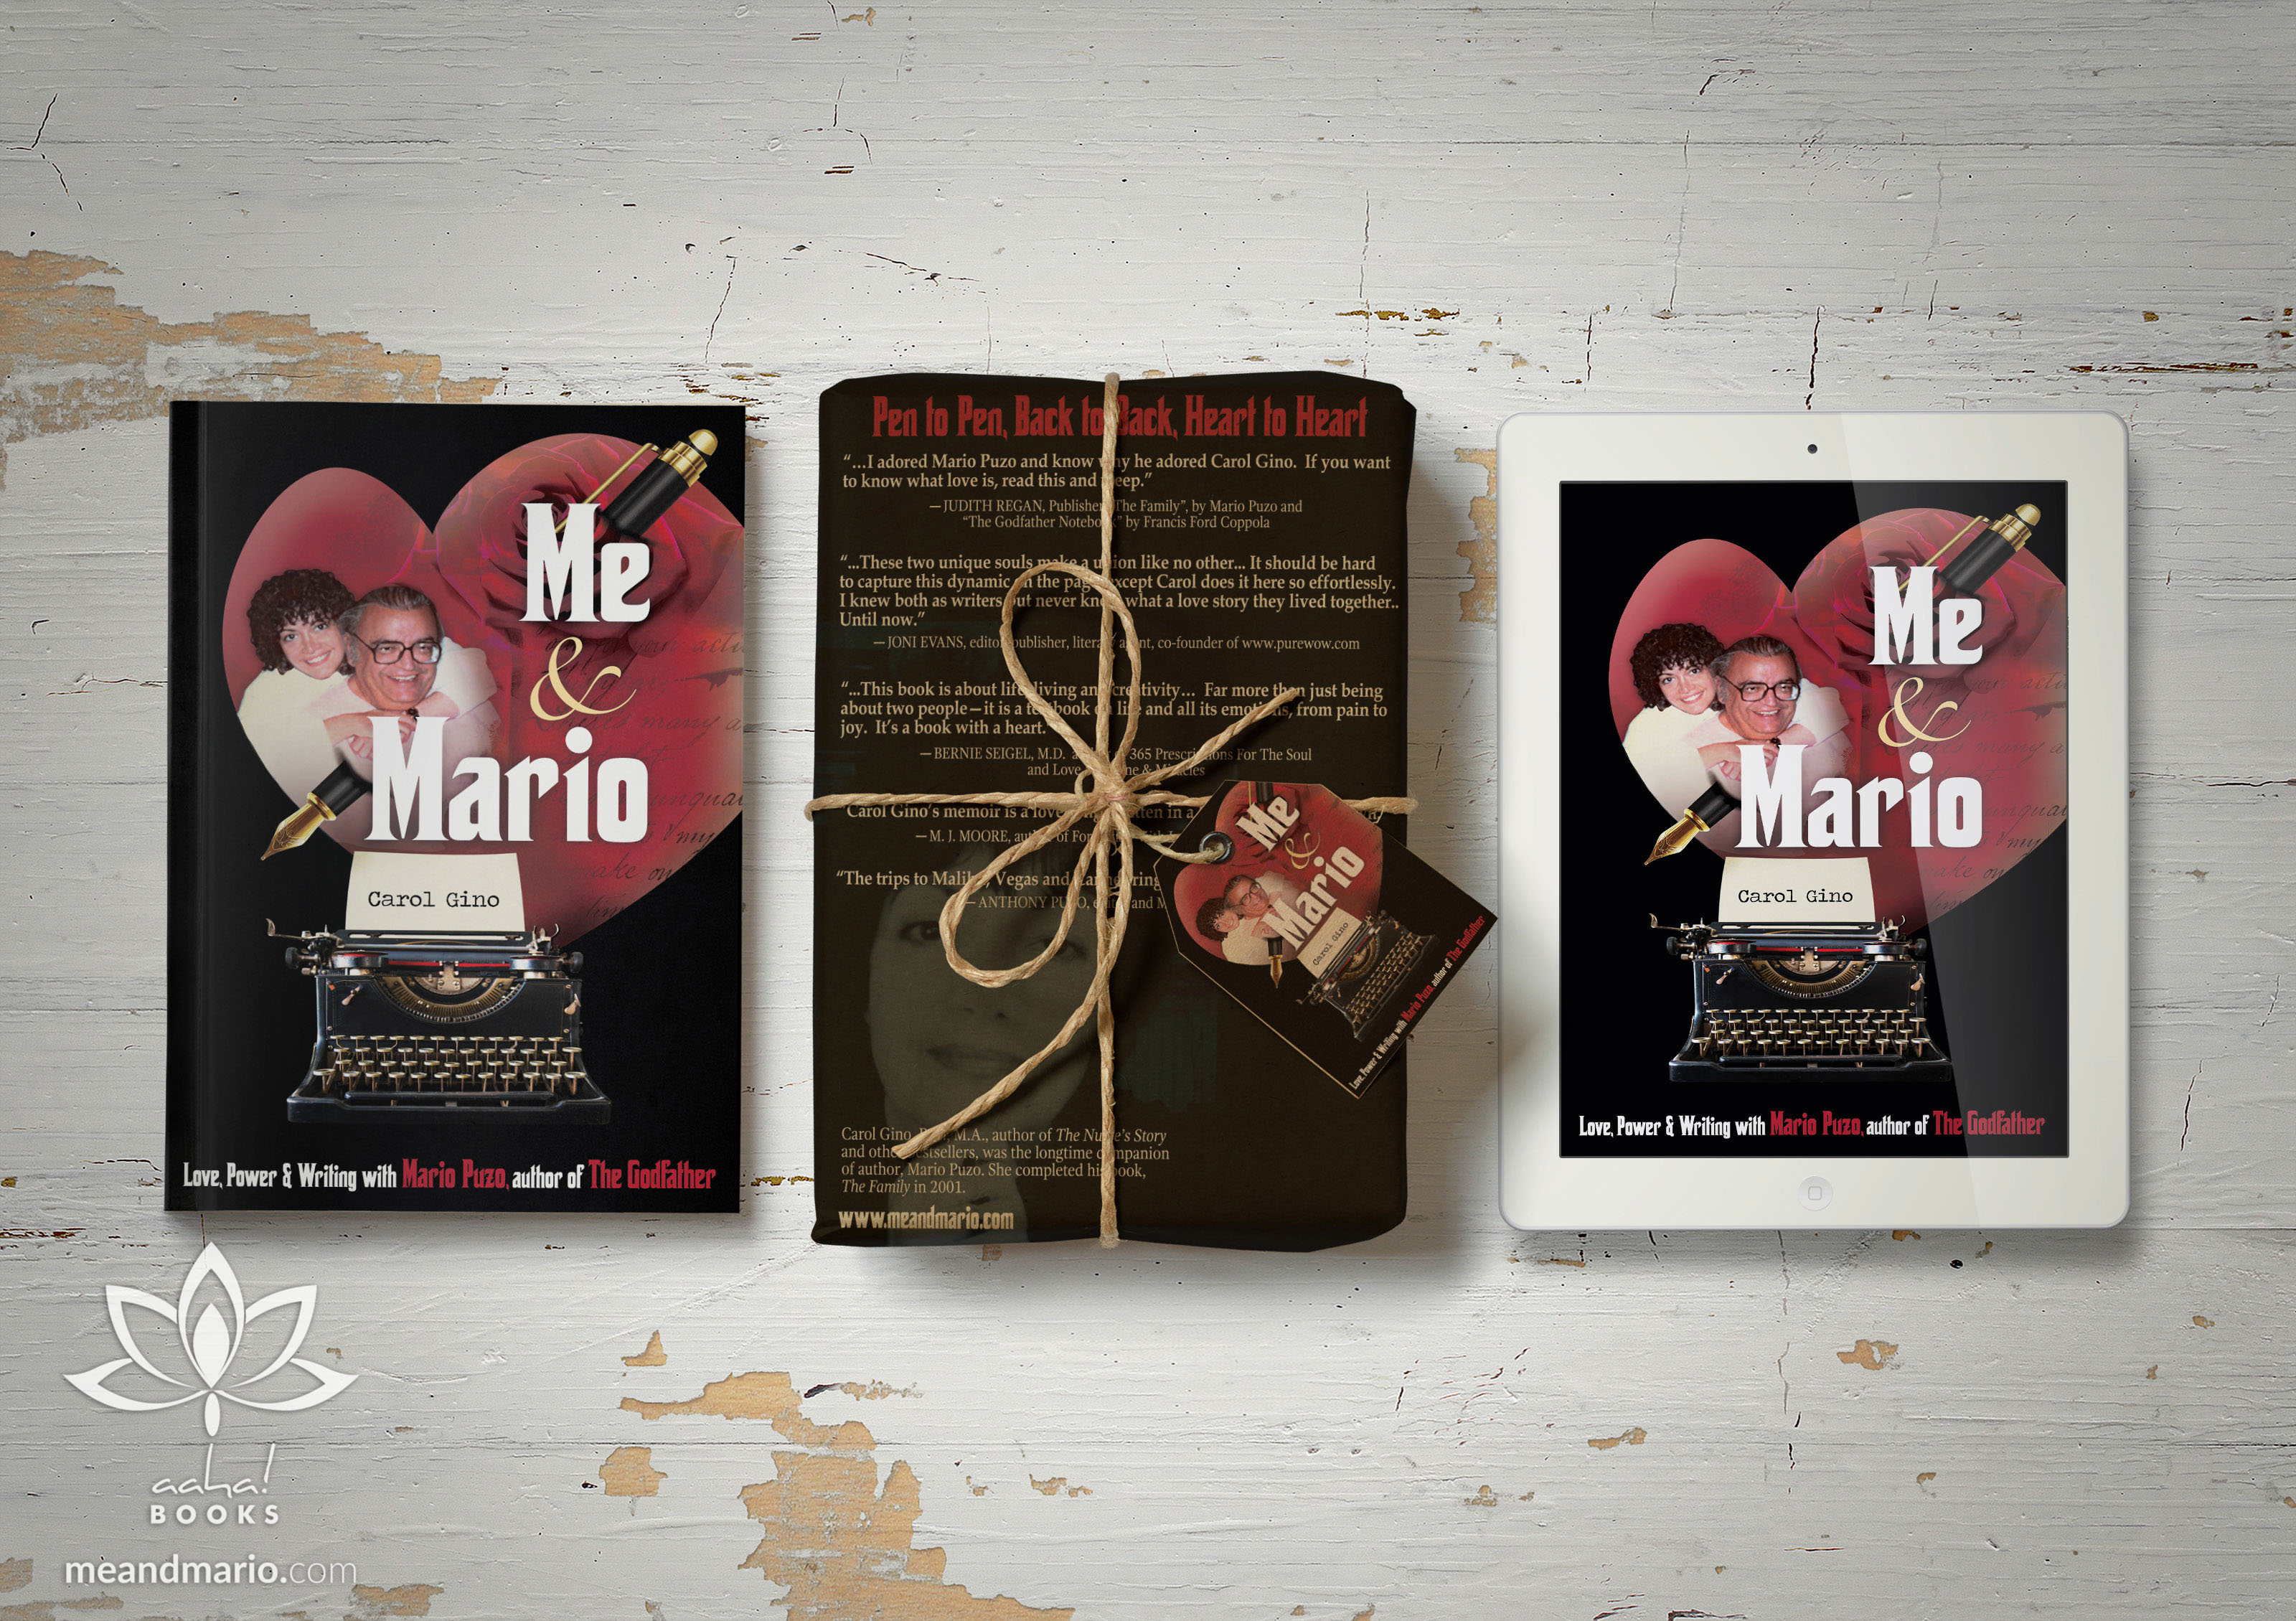 New memoir! Me and Mario: Love, Power & Writing with Mario Puzo, author of The Godfather